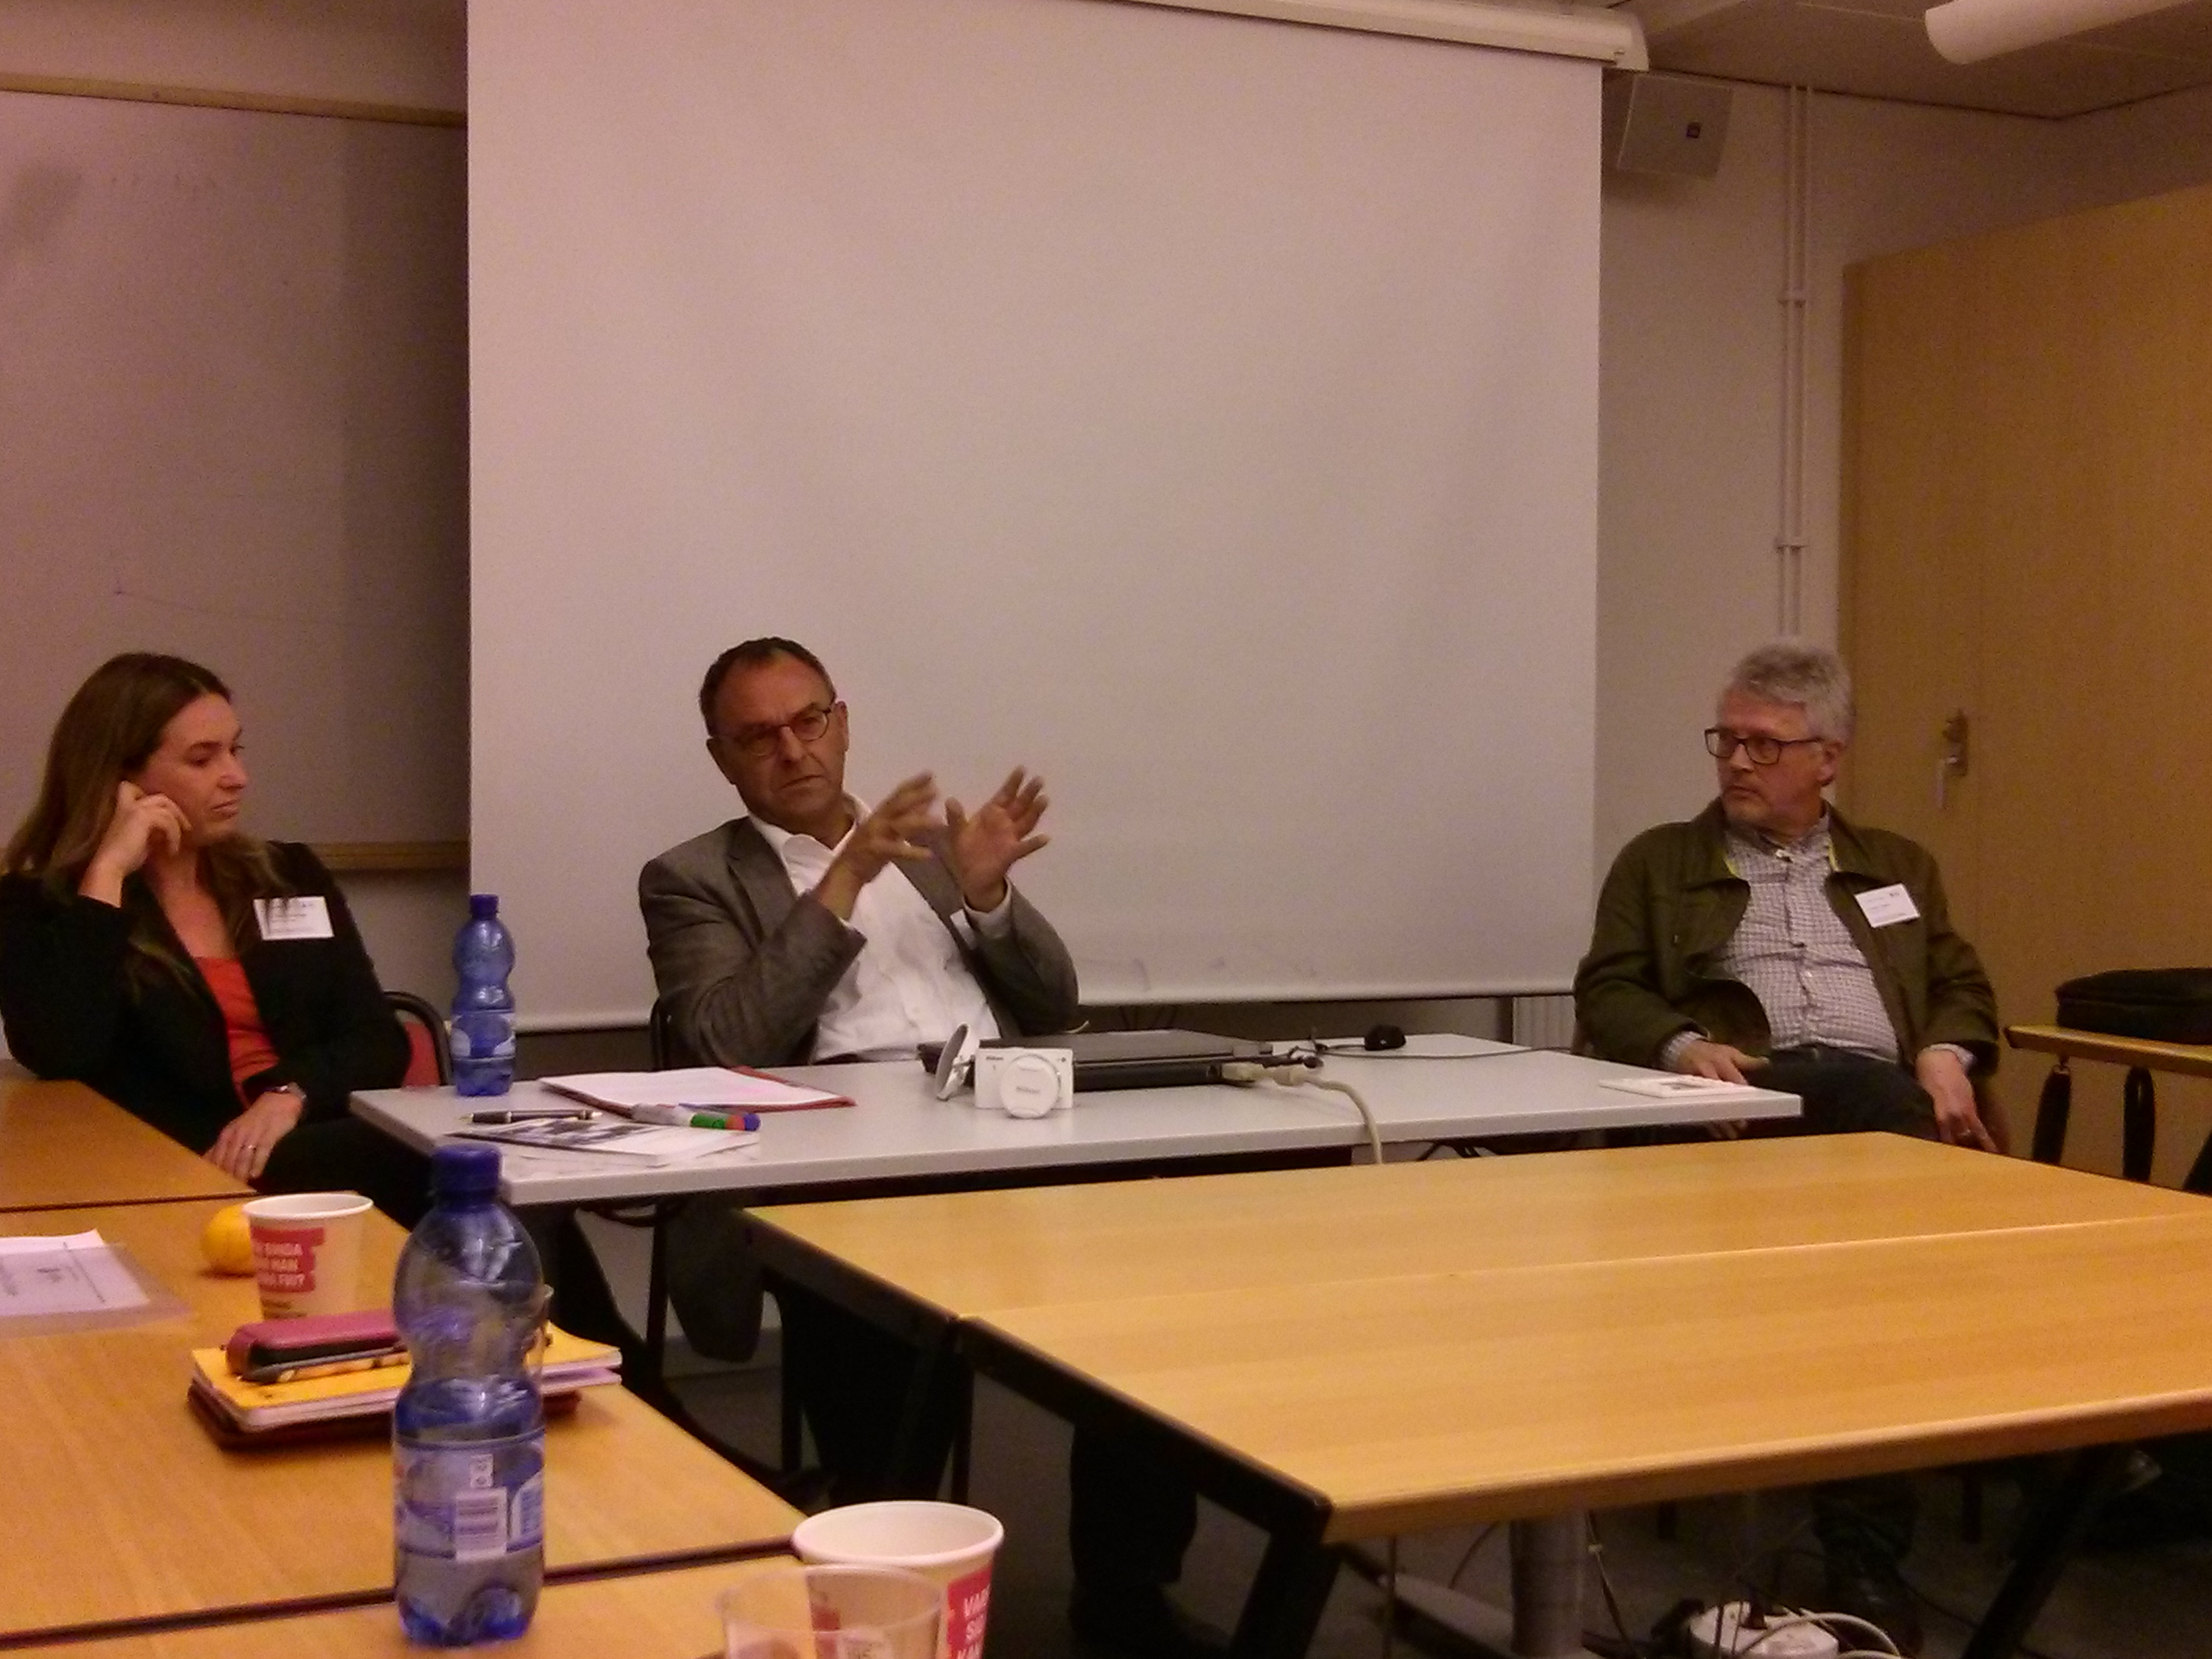 Eva Novrup Redvall, Ib Bondebjerg and Andrew Higson at the ECREA European Film Cultures conference, Lund University, November 8-9, 2013